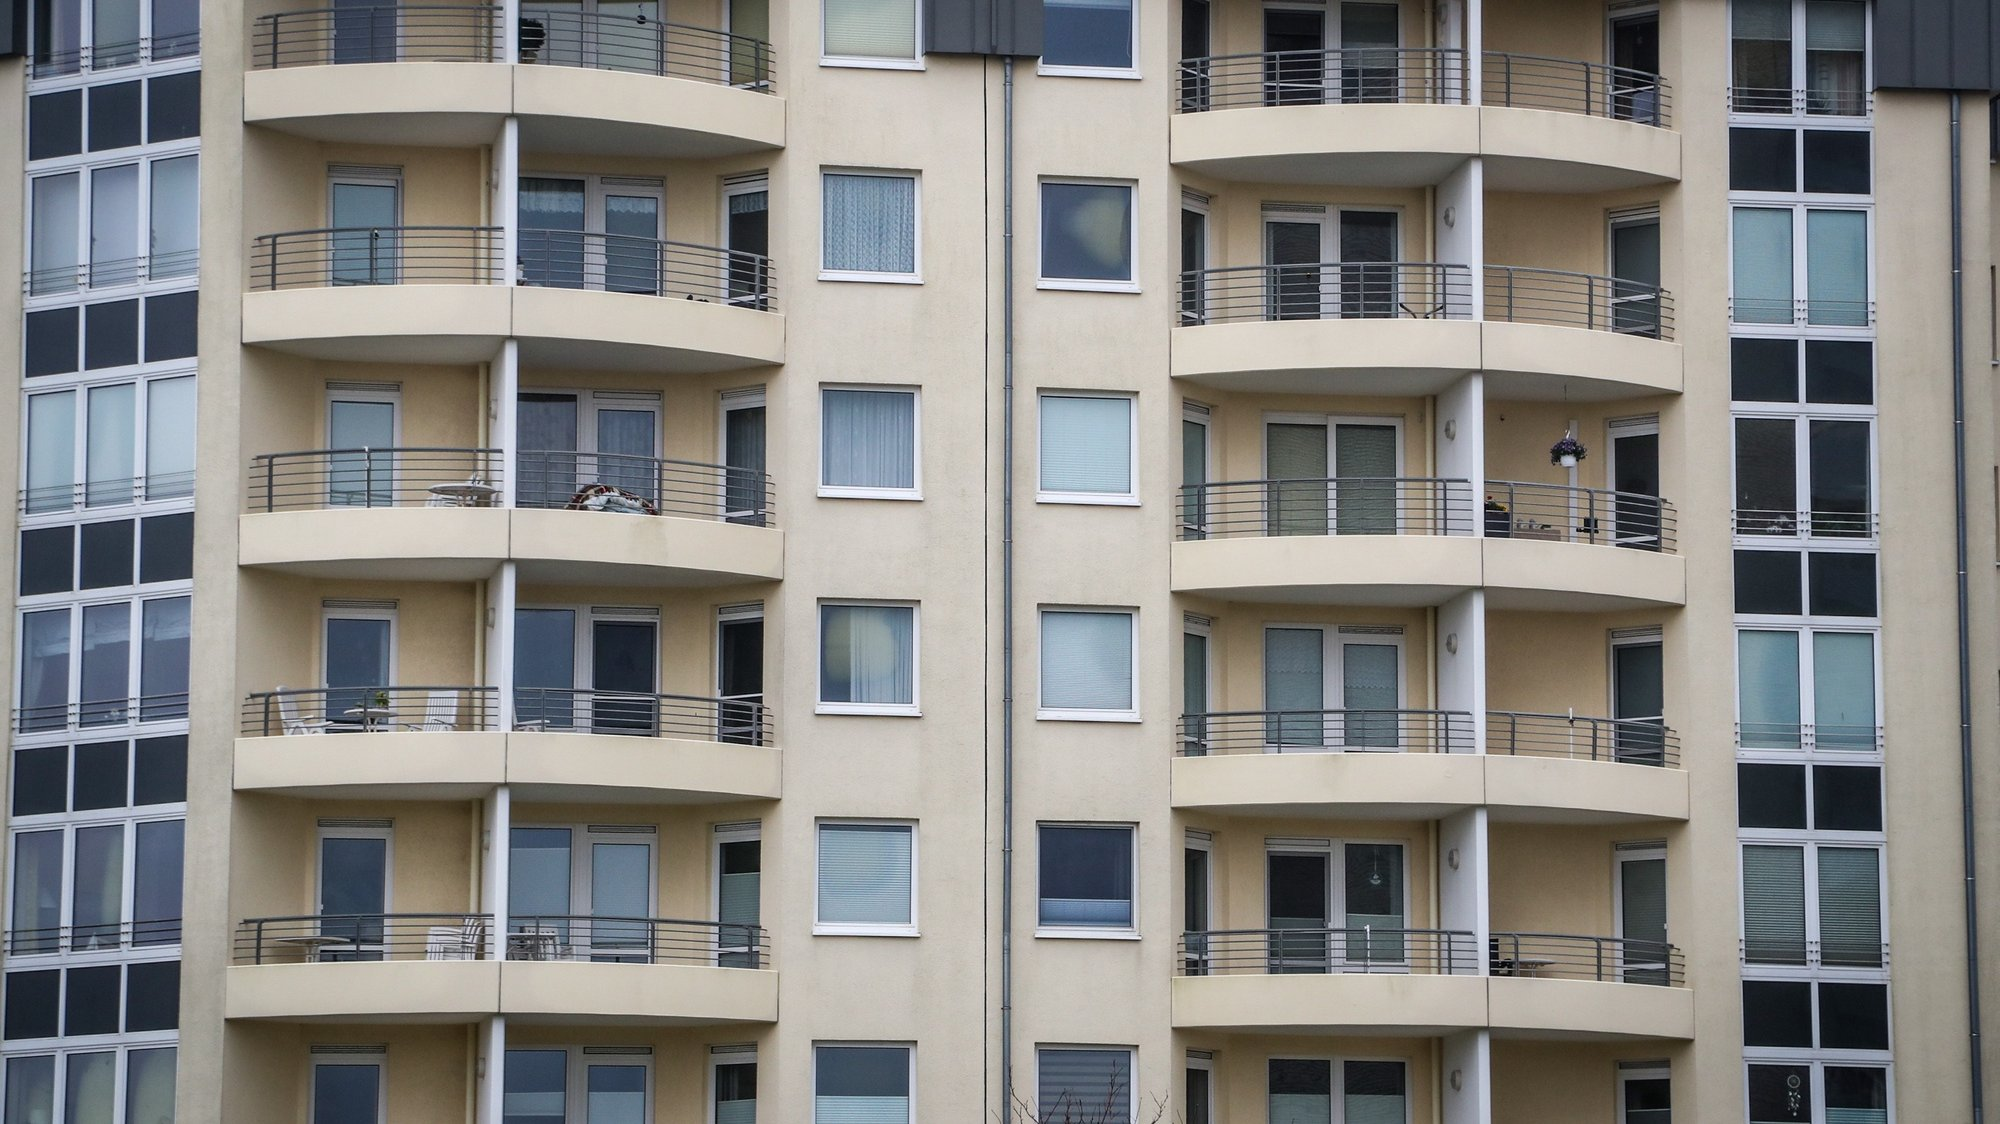 epa09115484 Balconies of an untenanted apartment building near the beach of Cuxhaven-Duhnen, northern Germany, 04 April 2021. Due to the rising numbers of COVID-19 cases caused by the SARS-CoV-2 coronavirus in Germany, most seaside resorts have imposed strict lockdown measures for the Easter weekend. Day trips to Cuxhaven and all overnight stays, even in own caravans, are prohibited, and restaurants may only sell take-away food. Only residents and owners of a secondary residence are allowed to take a walk on the beaches and promenades.  EPA/FOCKE STRANGMANN